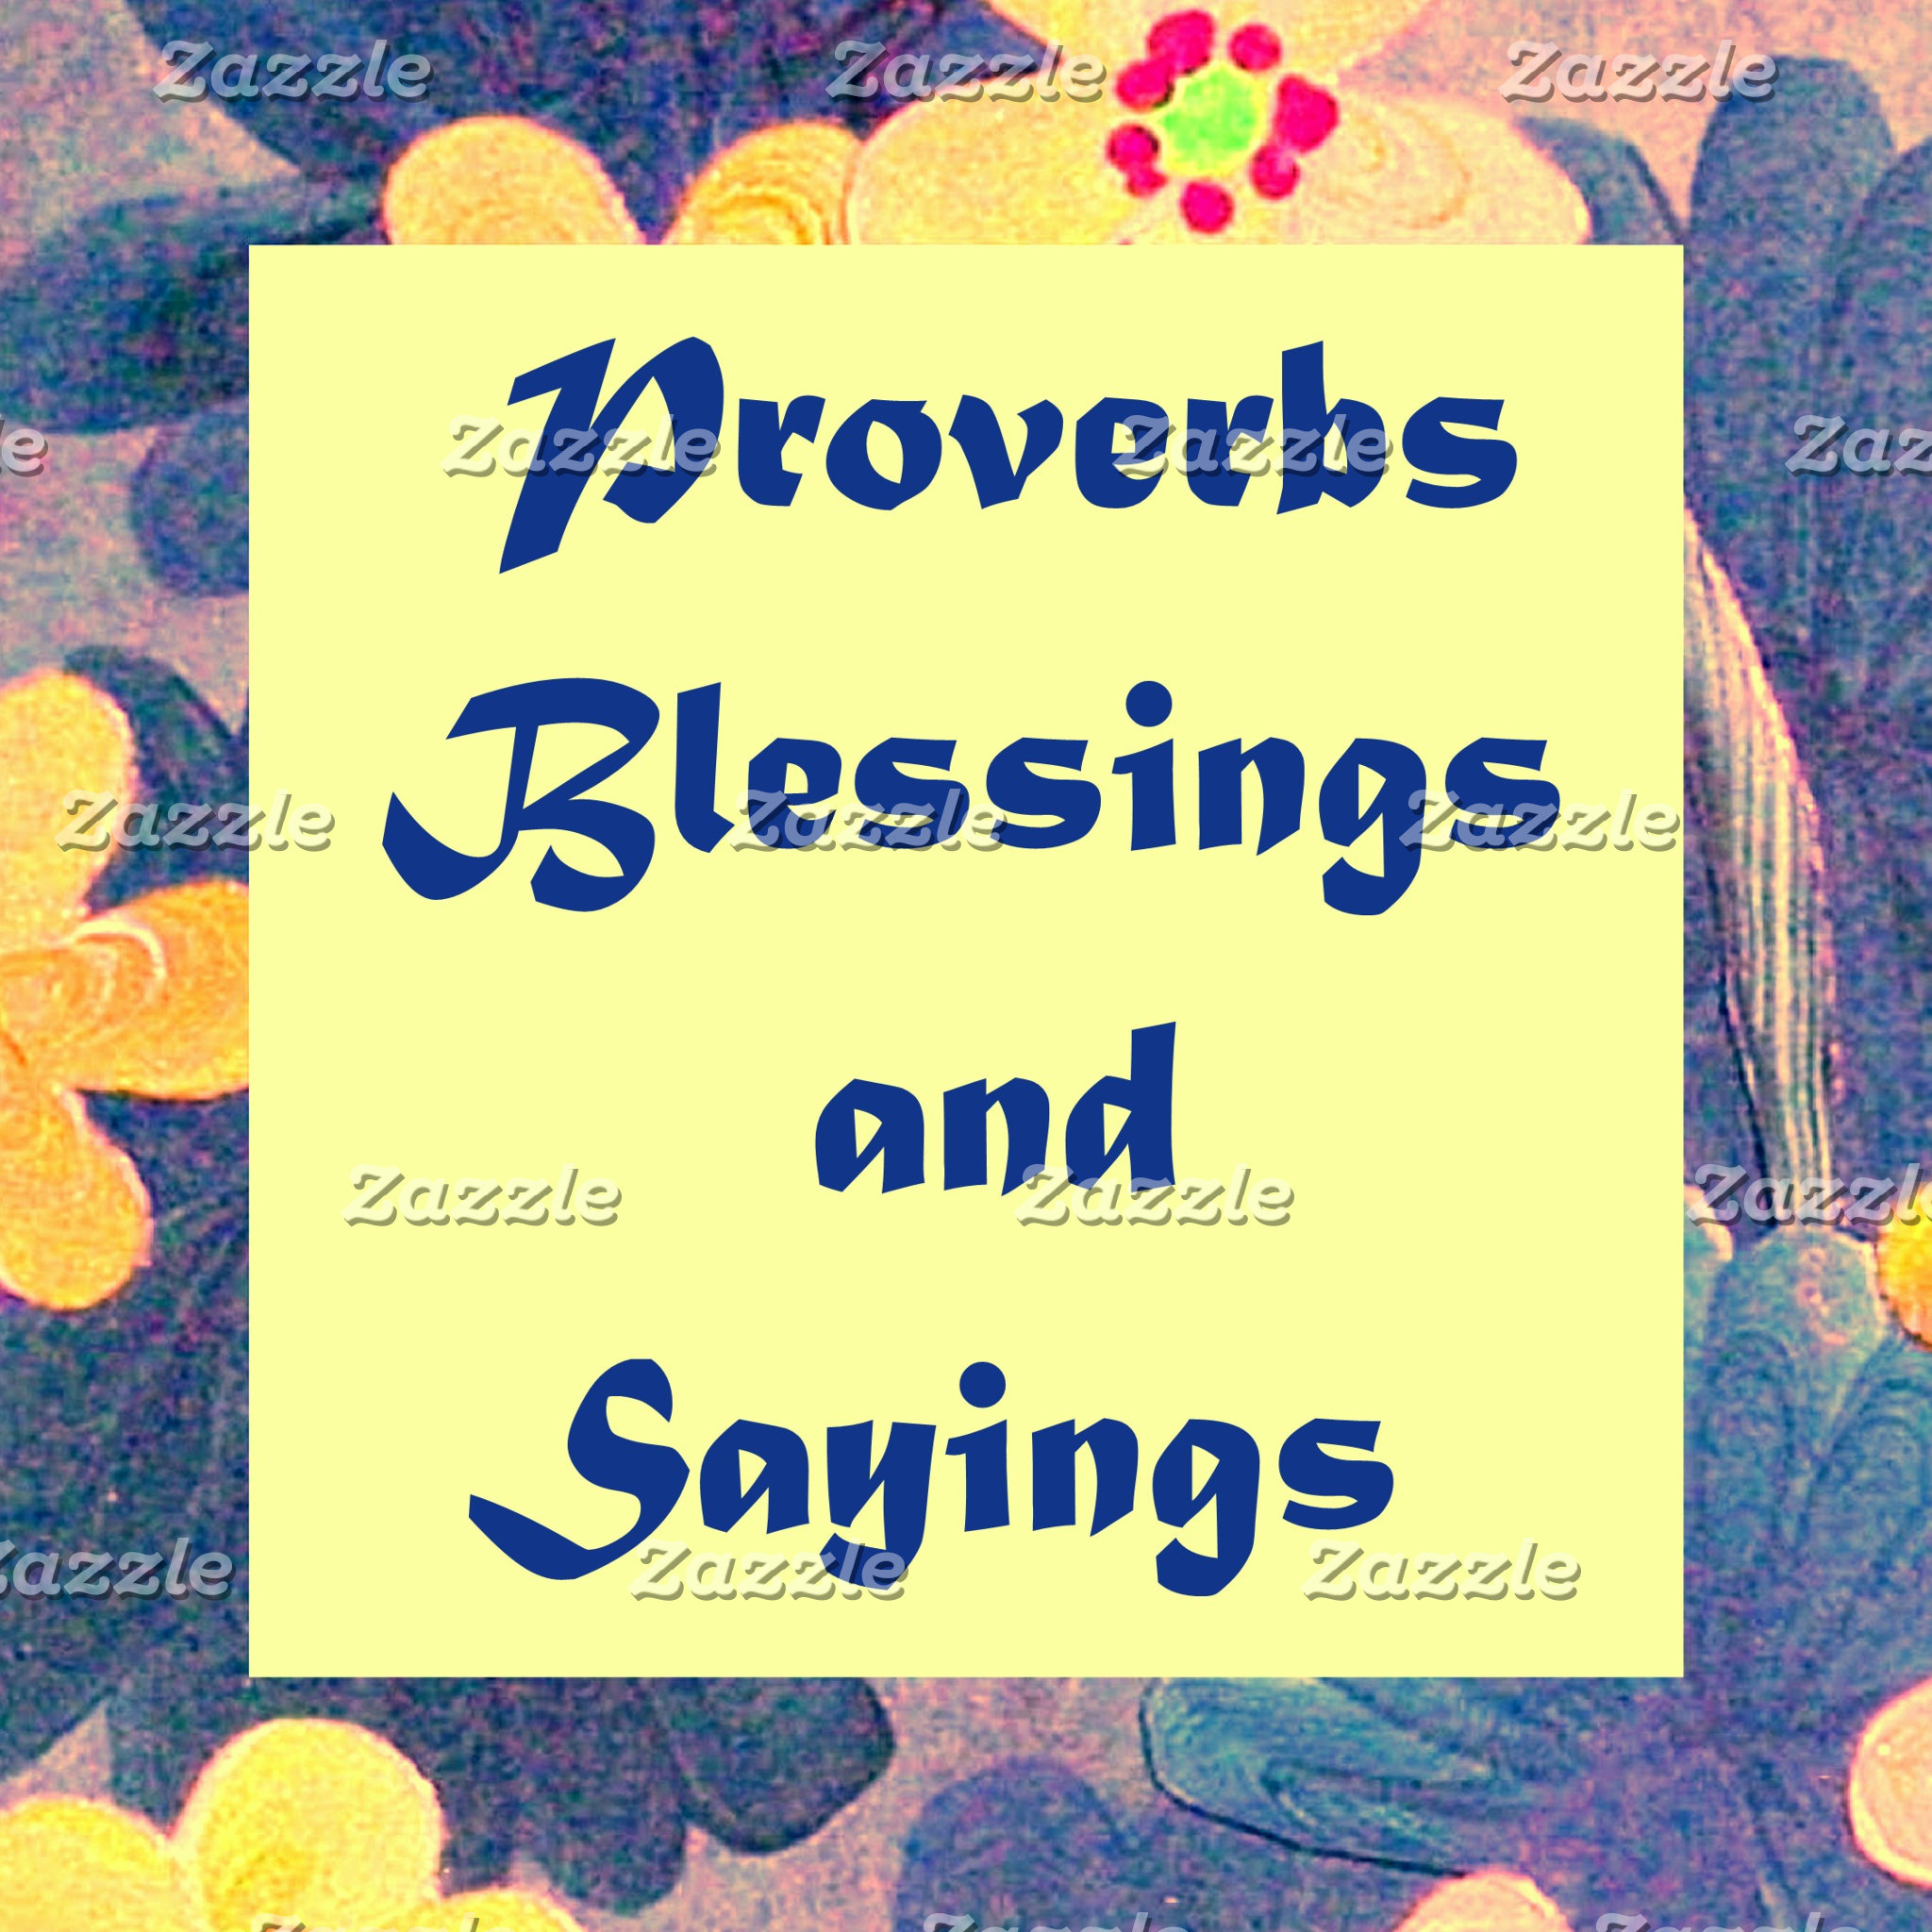 Proverbs, Blessings, Sayings